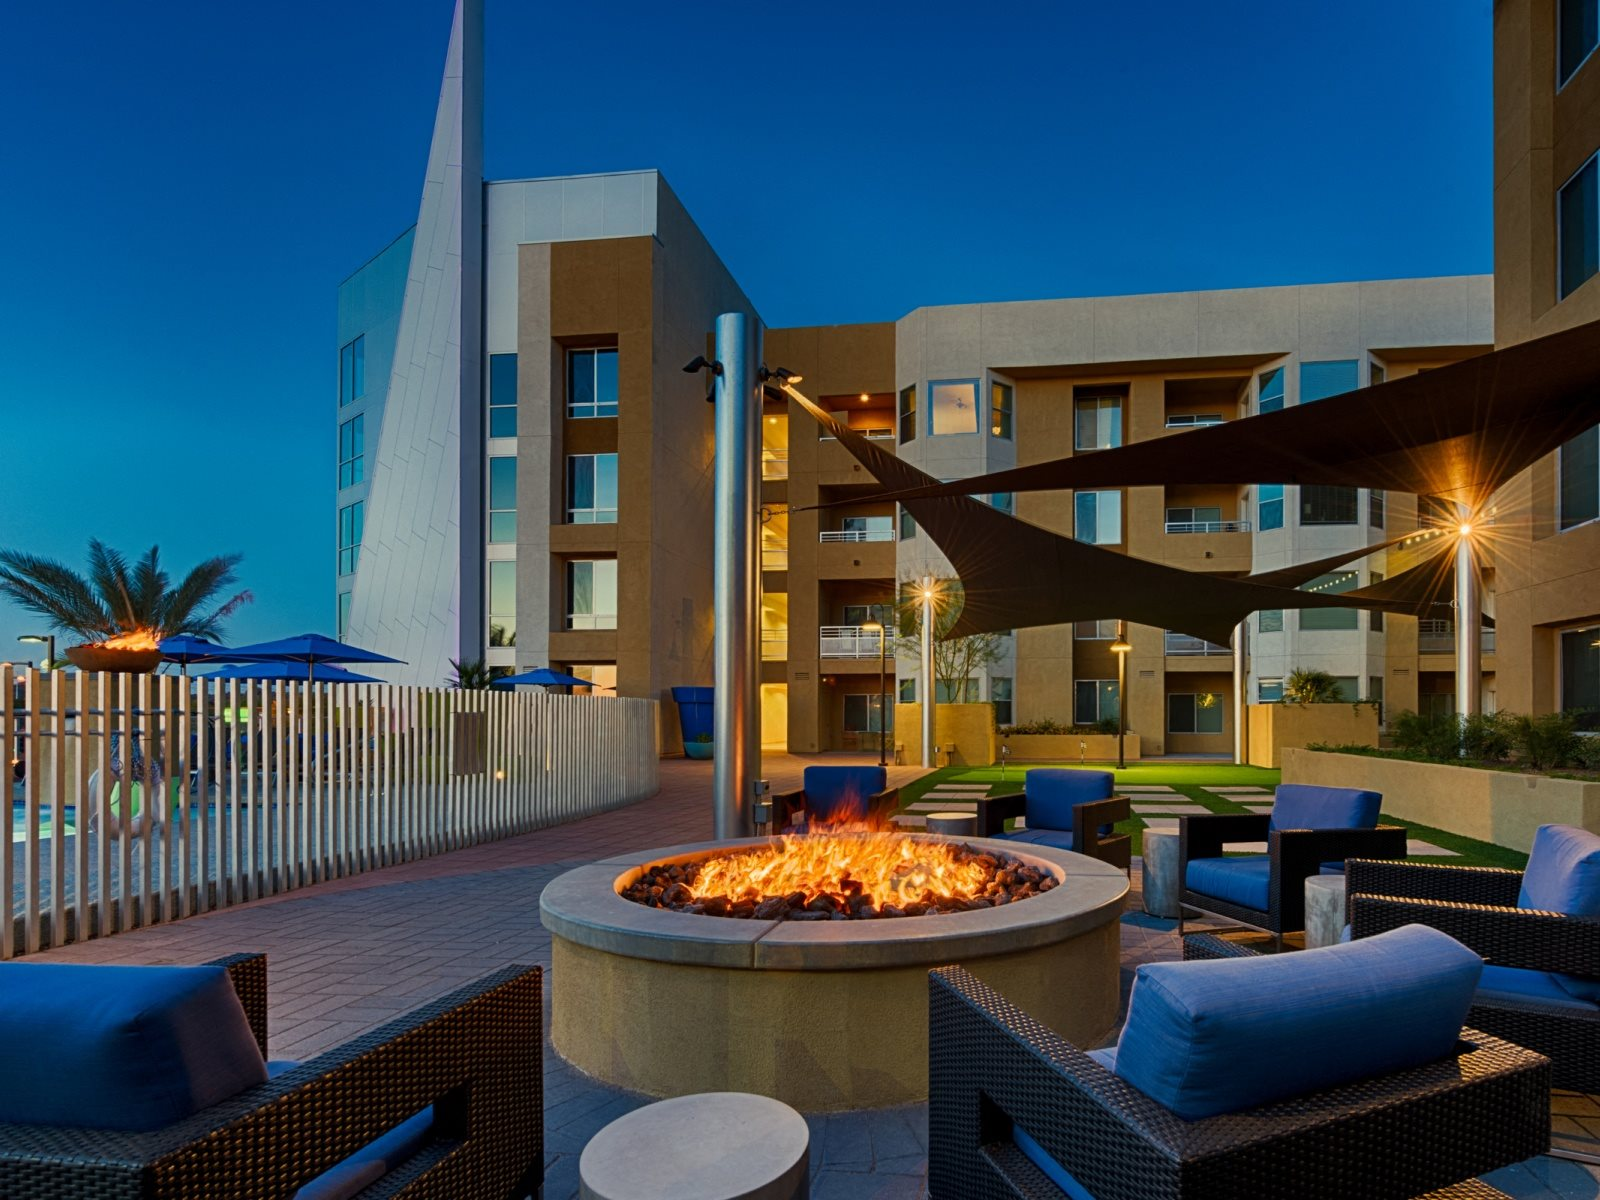 Luxury Apartments in Tempe Arizona - Skywater at Town Lake Building View